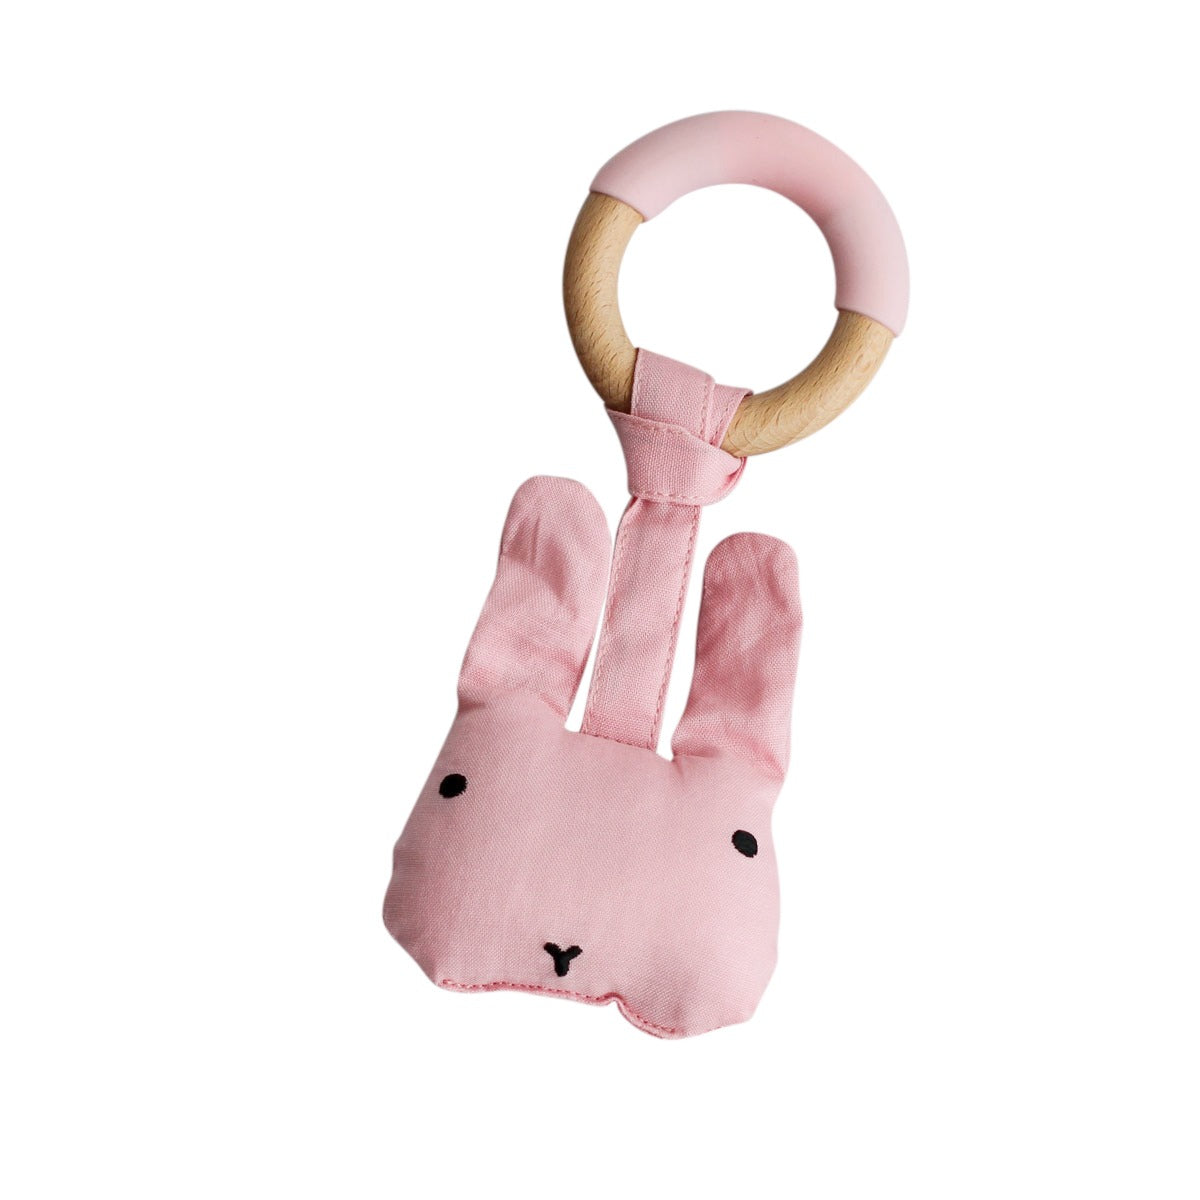 Wood Plush Rattle Teether Toy-Pink Rabbit